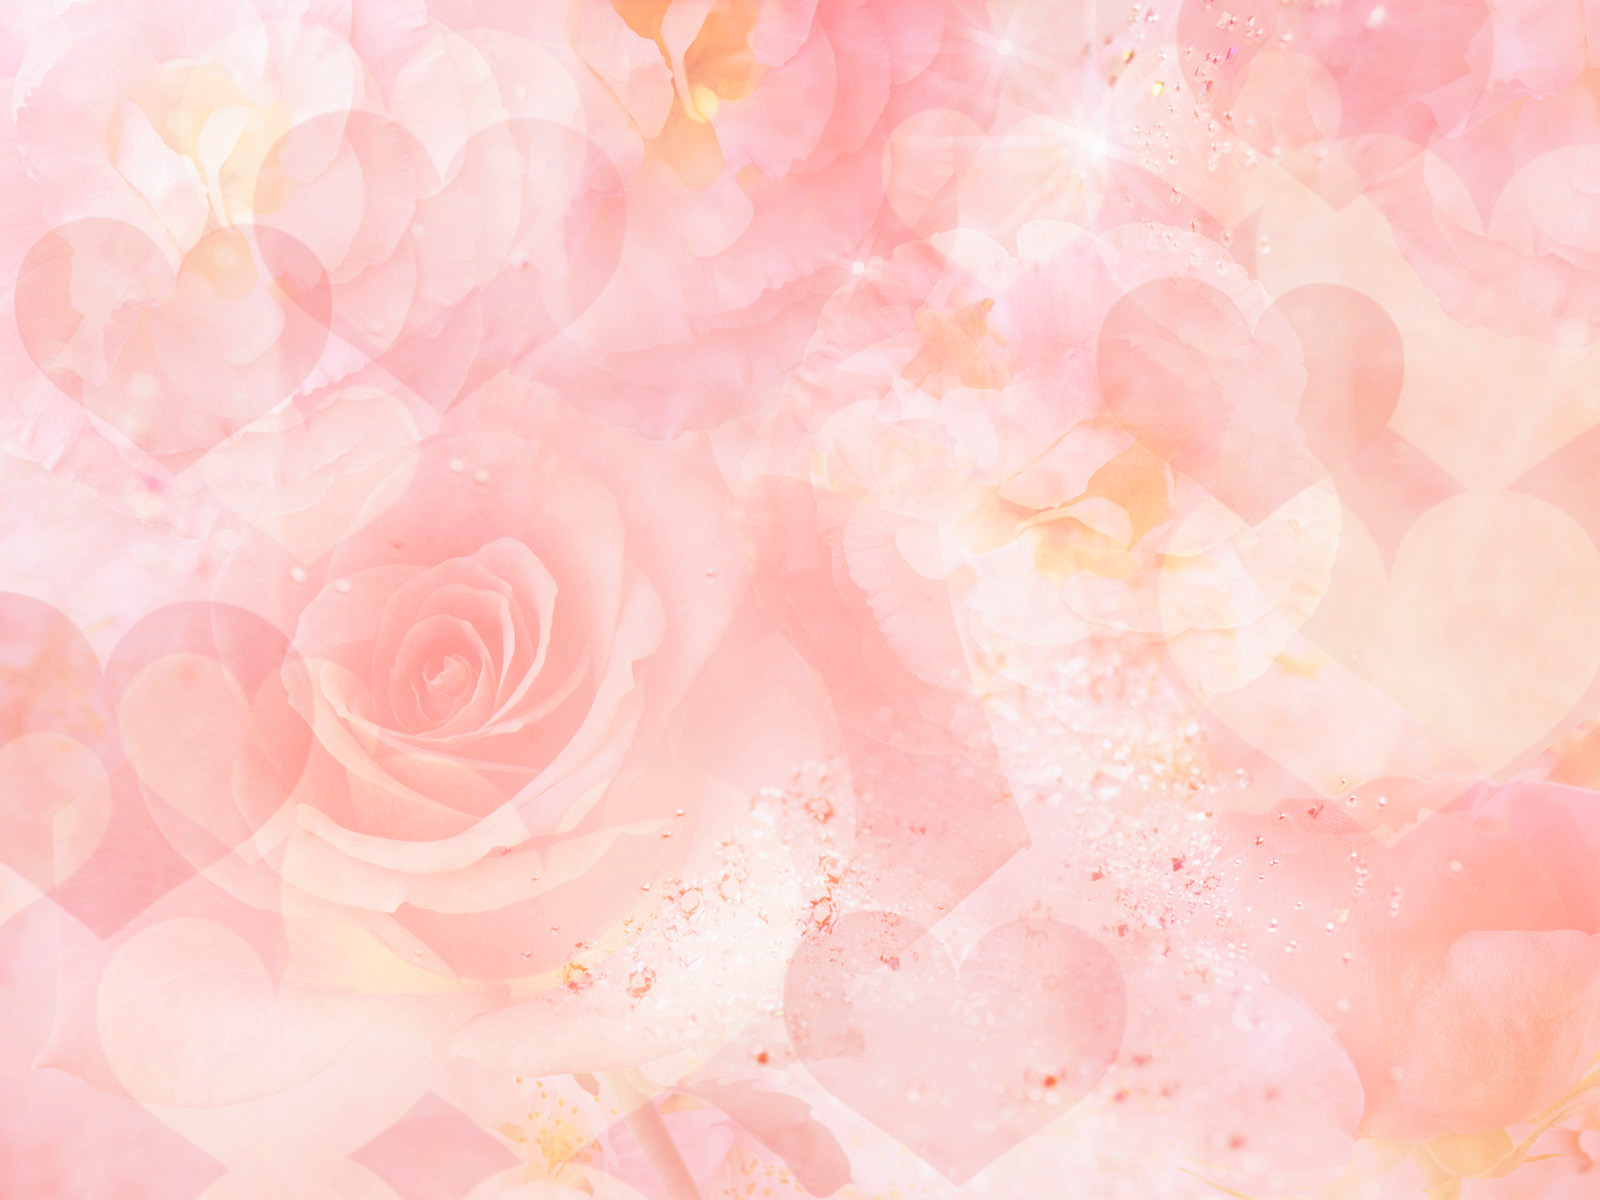 Light Pink Wallpapers Download 1600x1200